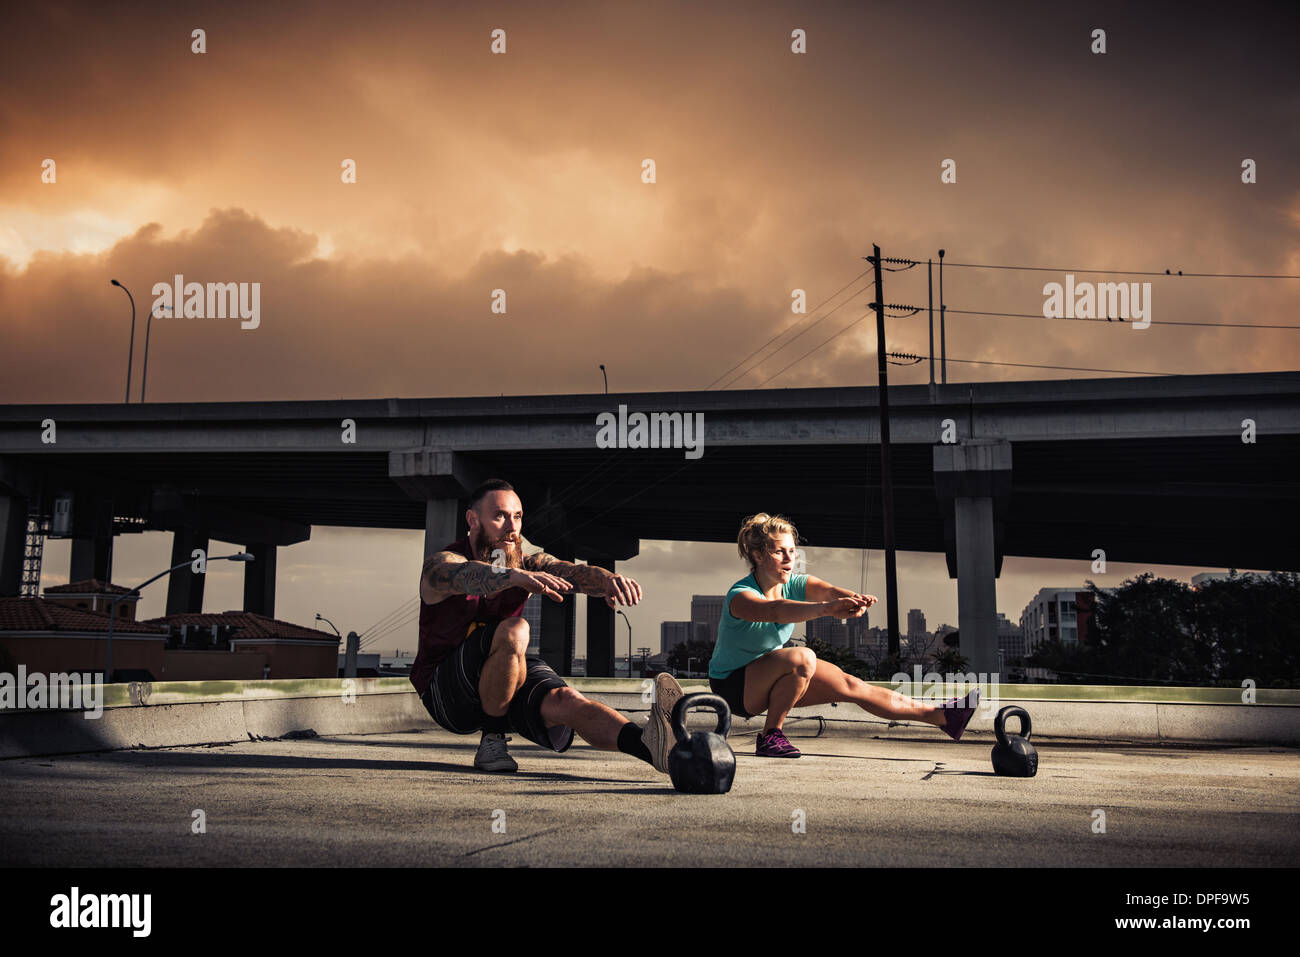 Man and woman training on gymnasium rooftop - Stock Image